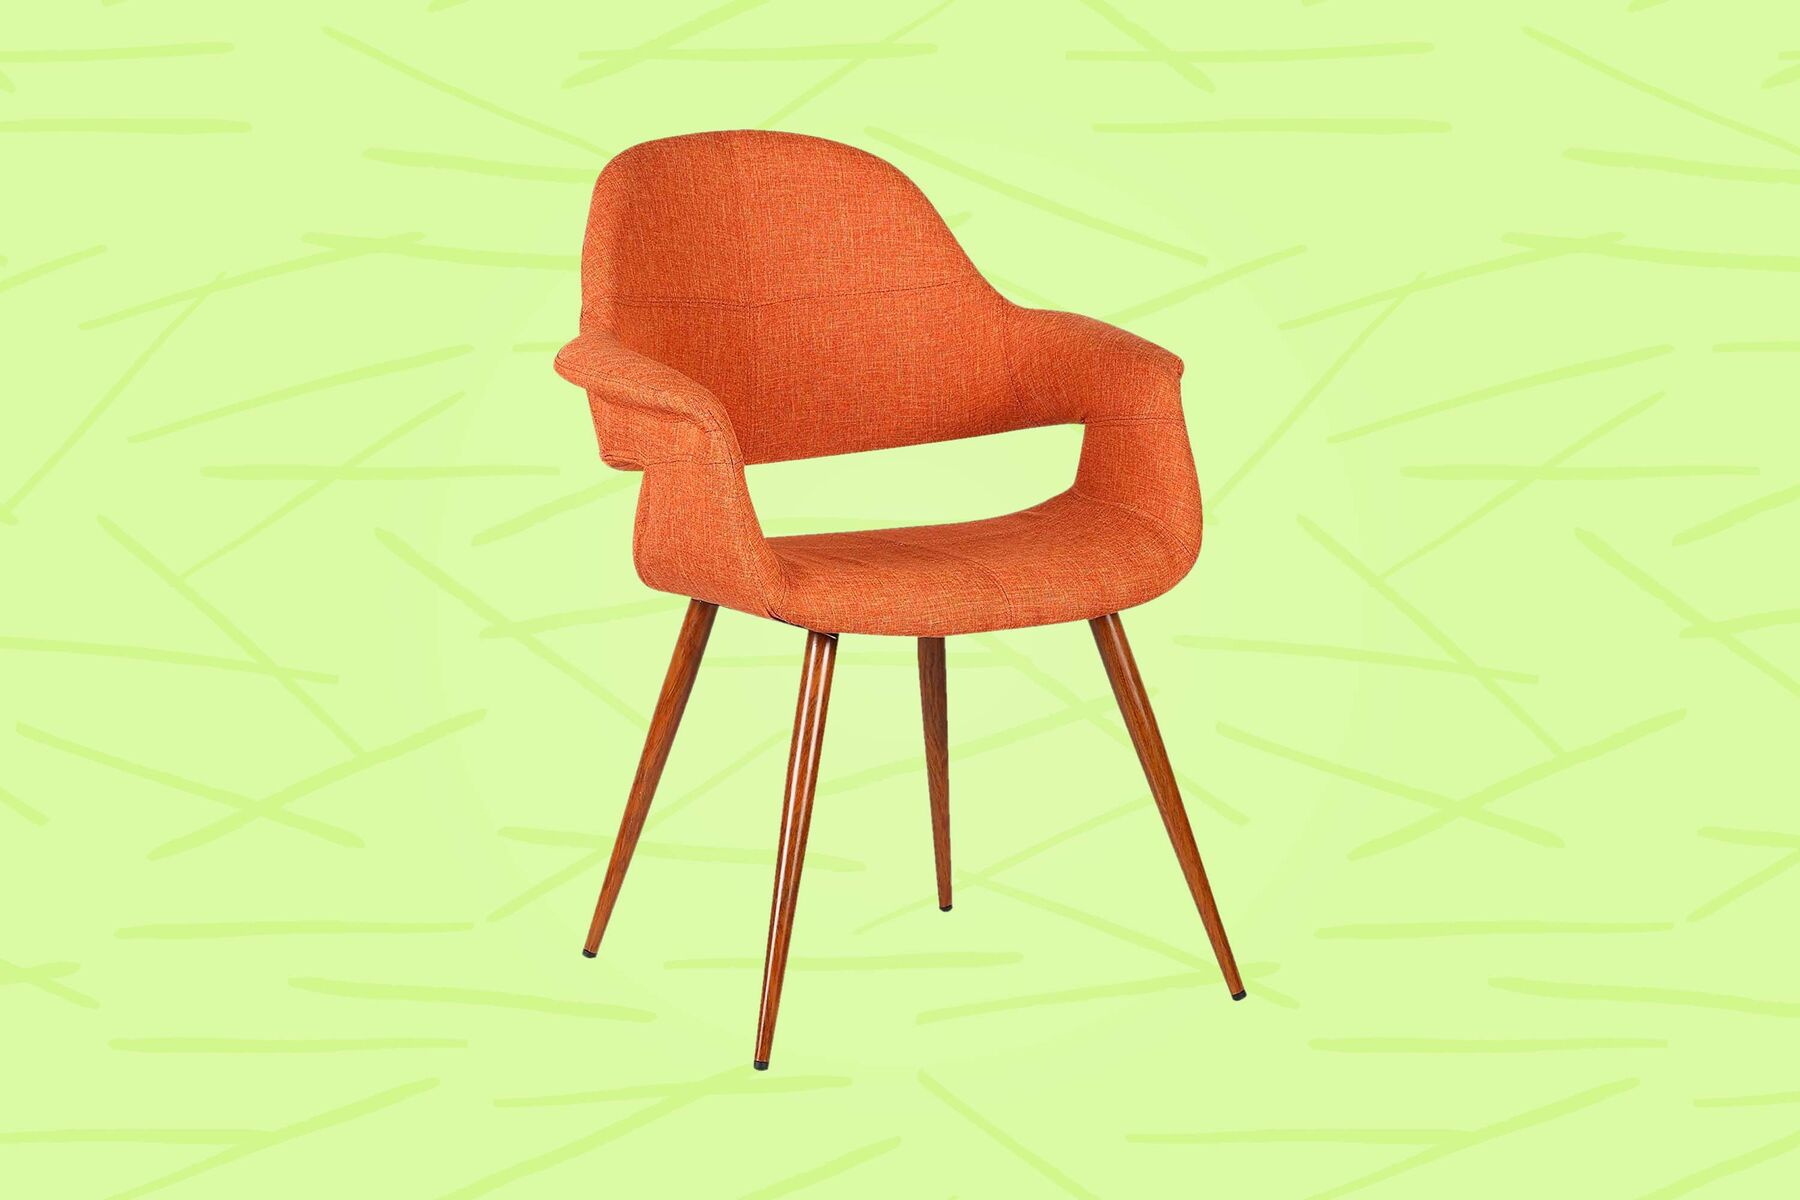 All the best-looking furniture and decor on sale for Prime Day